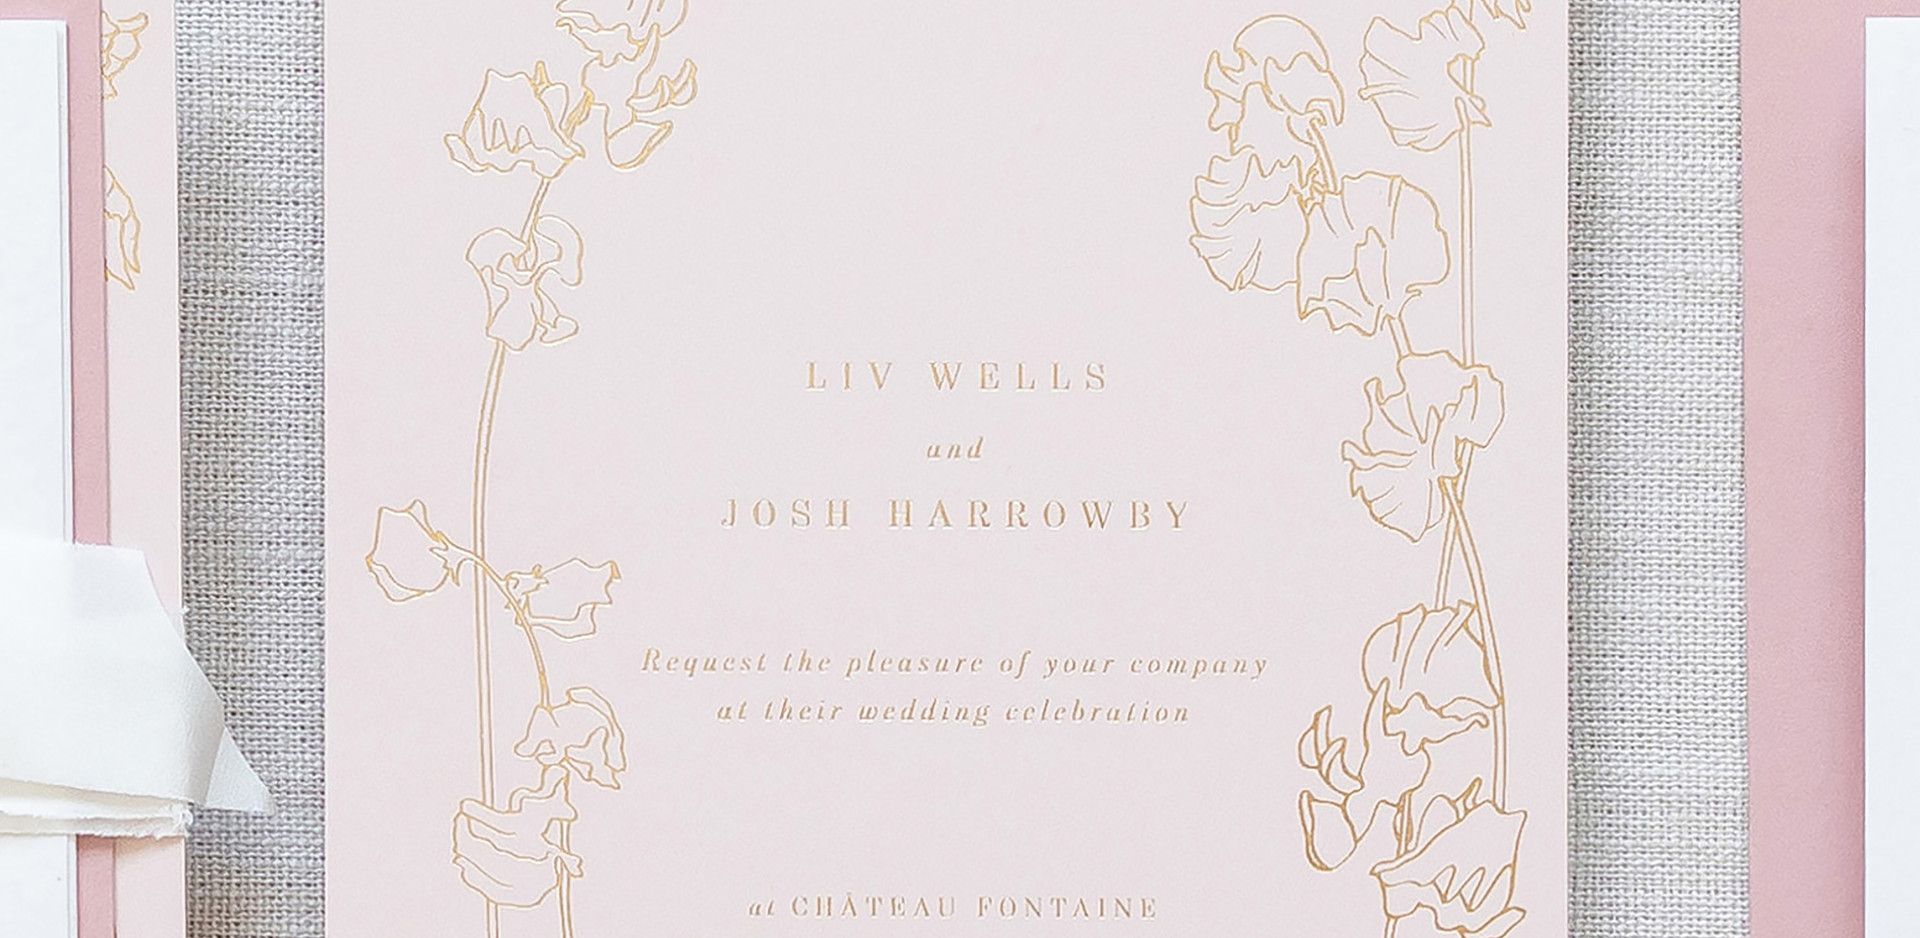 Bespoke Wedding Invitations with floral